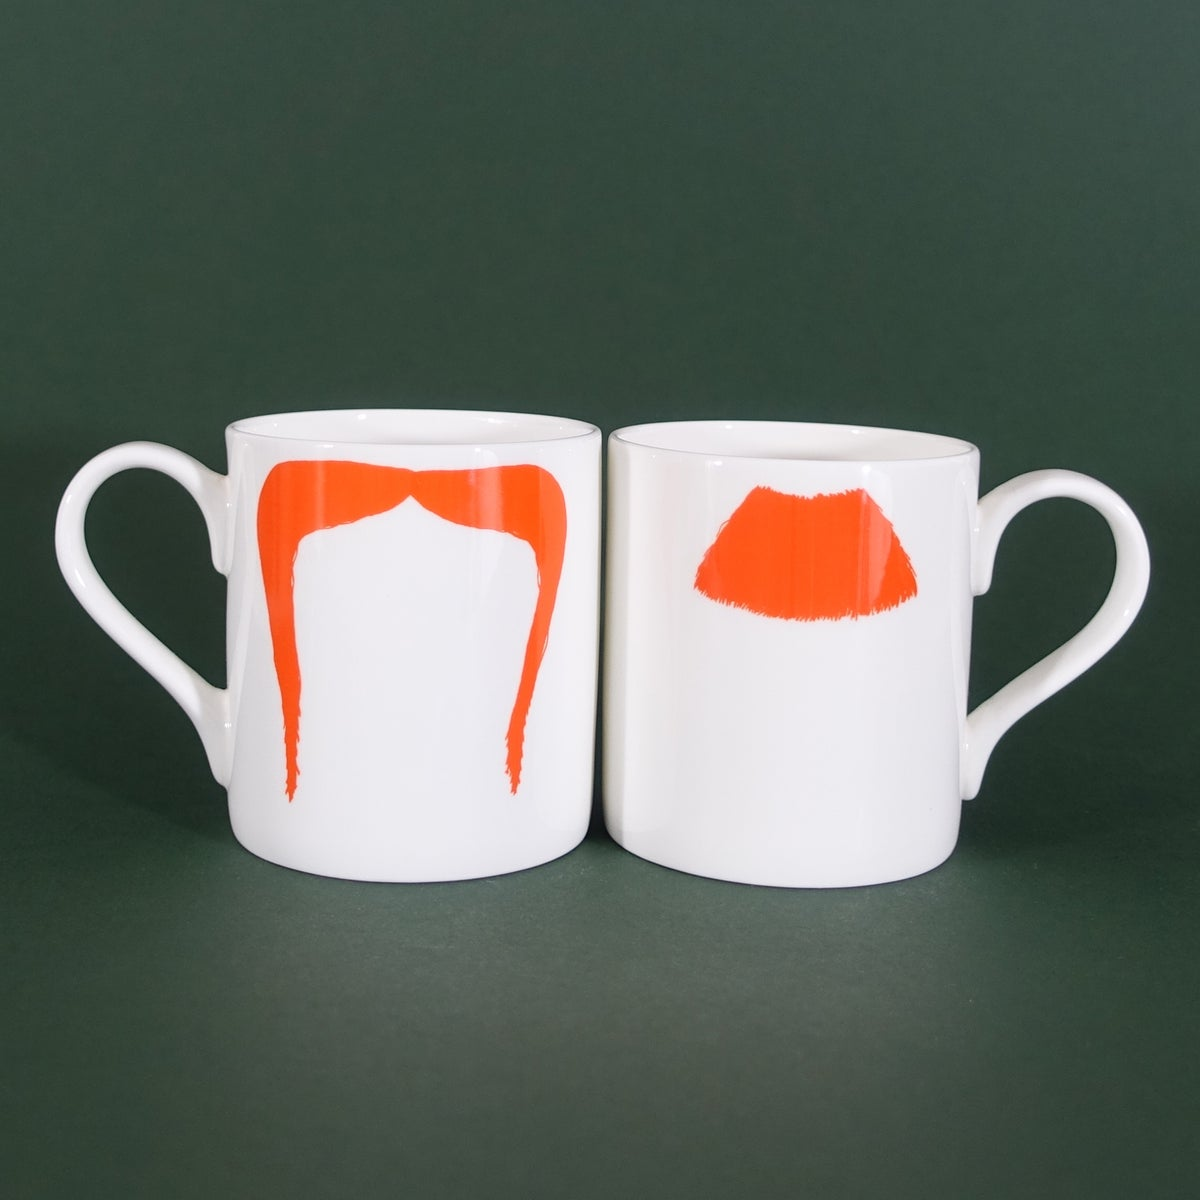 Image of Original Ginger Charlie Chaplin & Fu Manchu Moustache Mug Pair - Set of Two